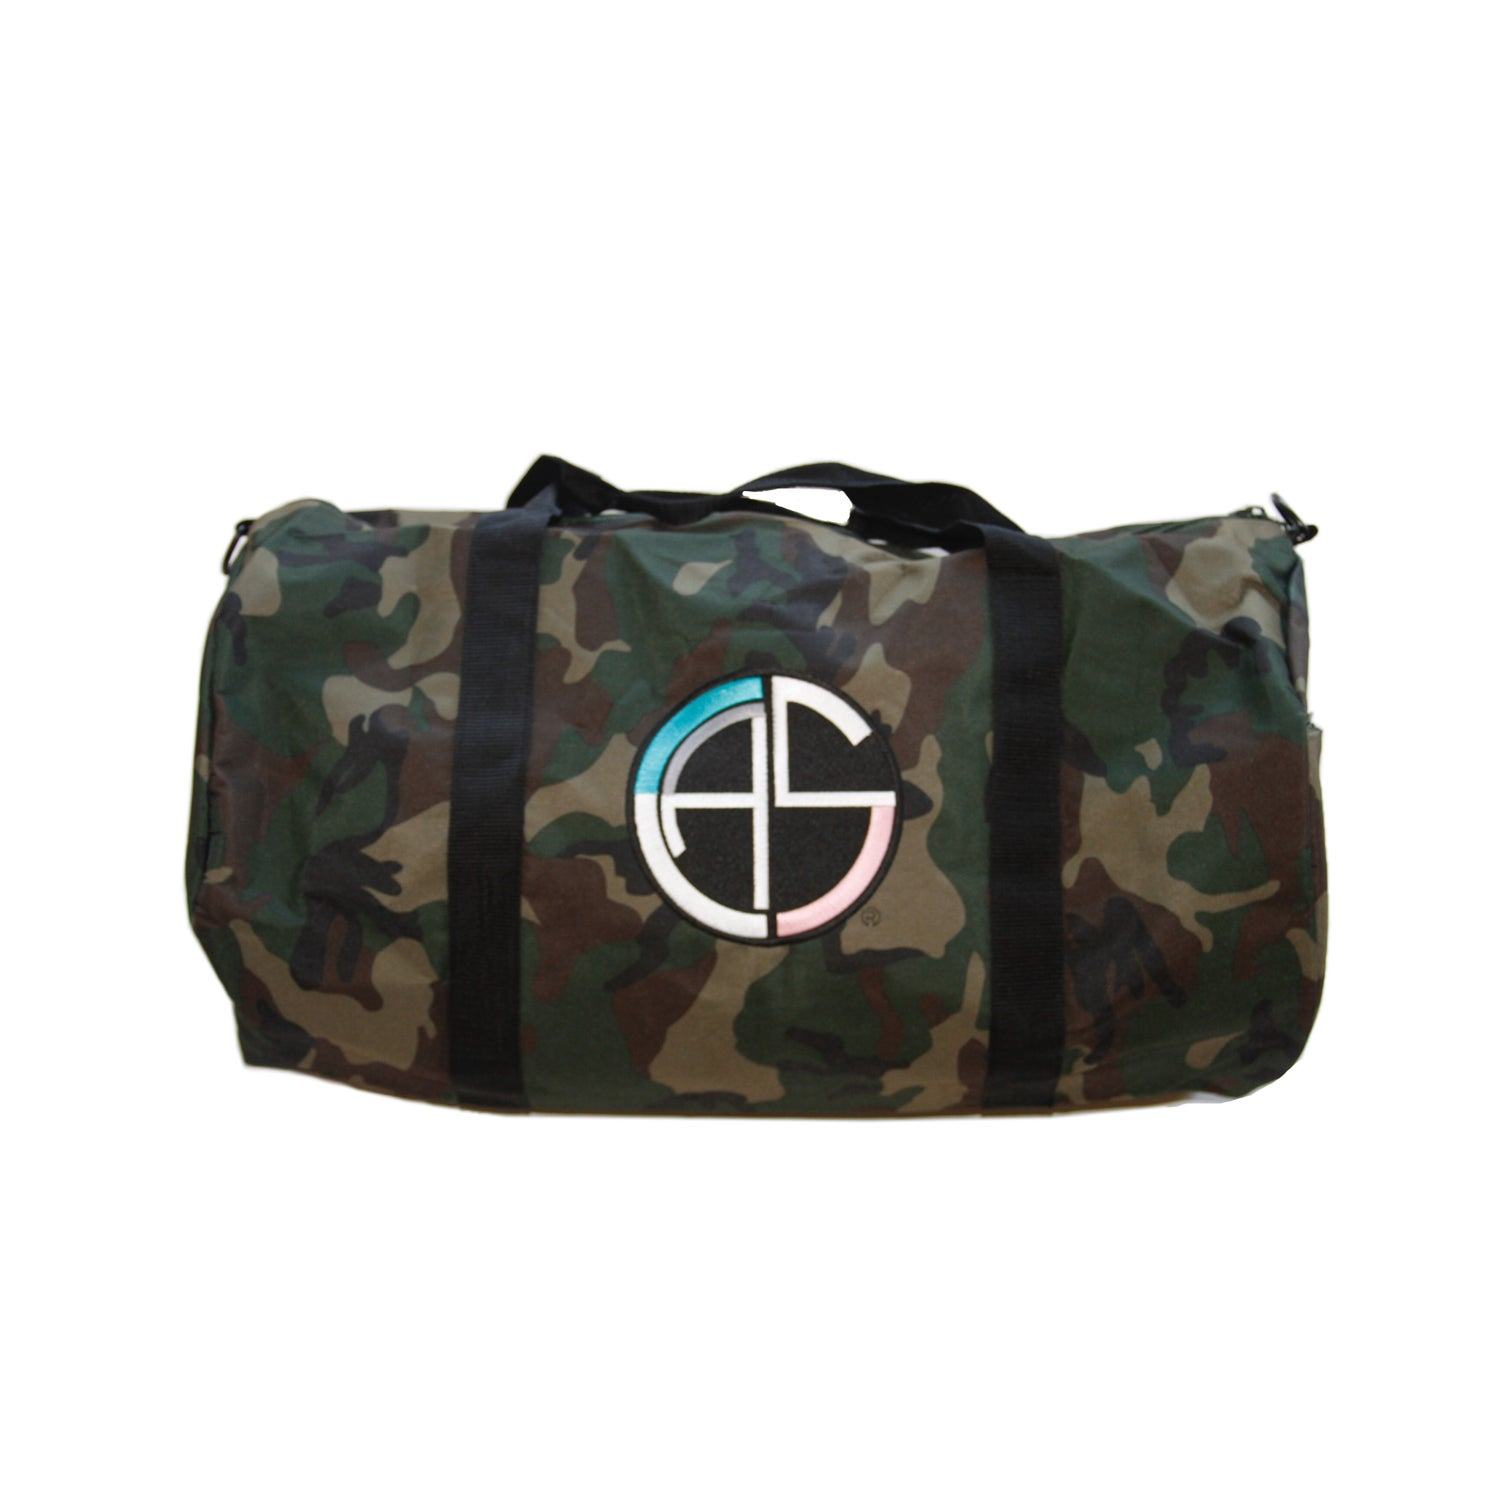 Image of C.A.S. Camo Duffle Bag